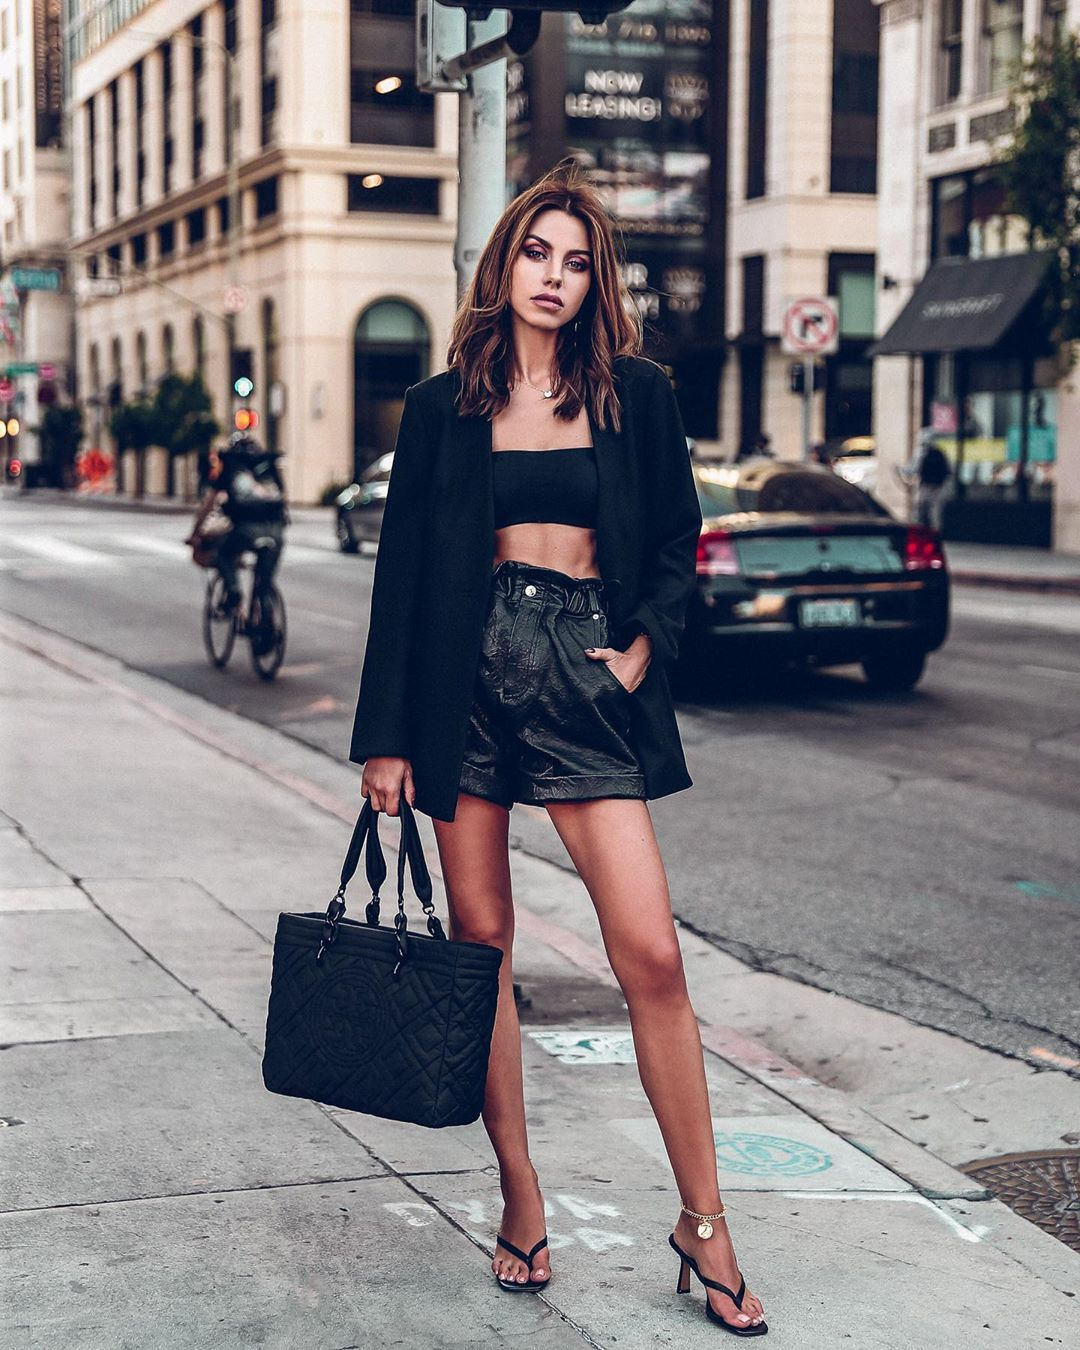 """ANNABELLE FLEUR on Instagram: """"@esquar.ed styled this look ? serious trend awareness points for heeled flip flops ???"""""""